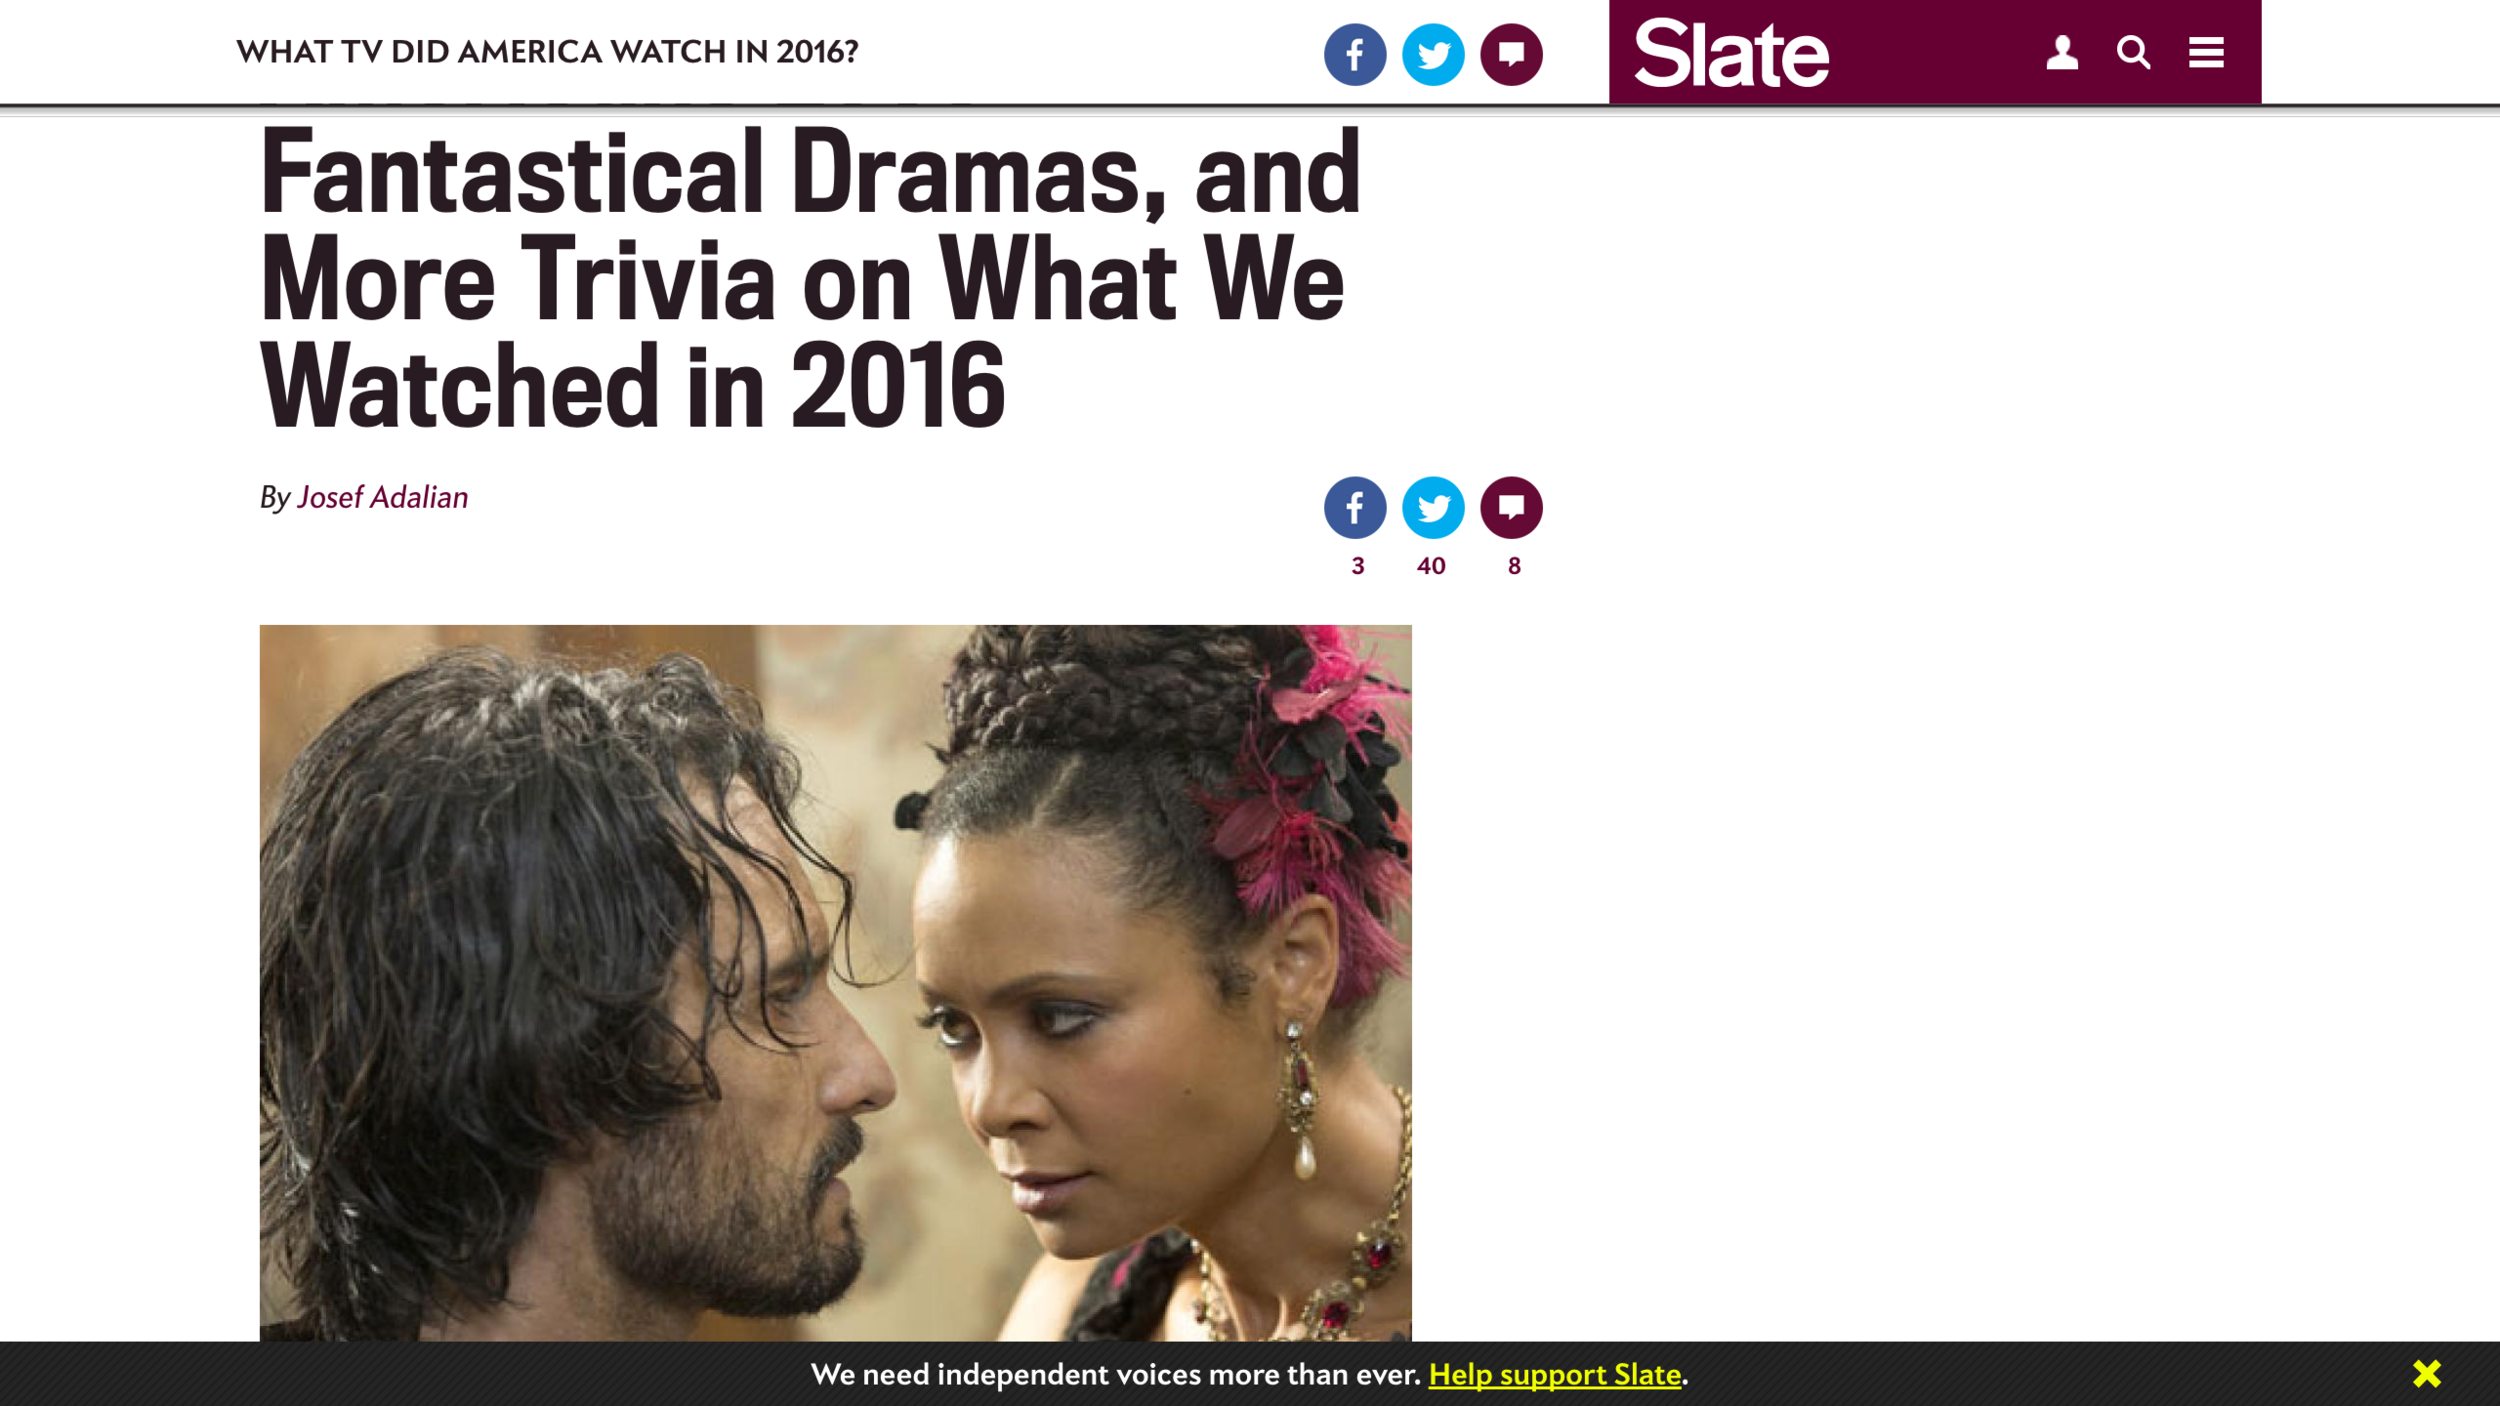 Link to Slate article   Americans Love Fantastical Dramas, and More Trivia on What We Watched in 2016